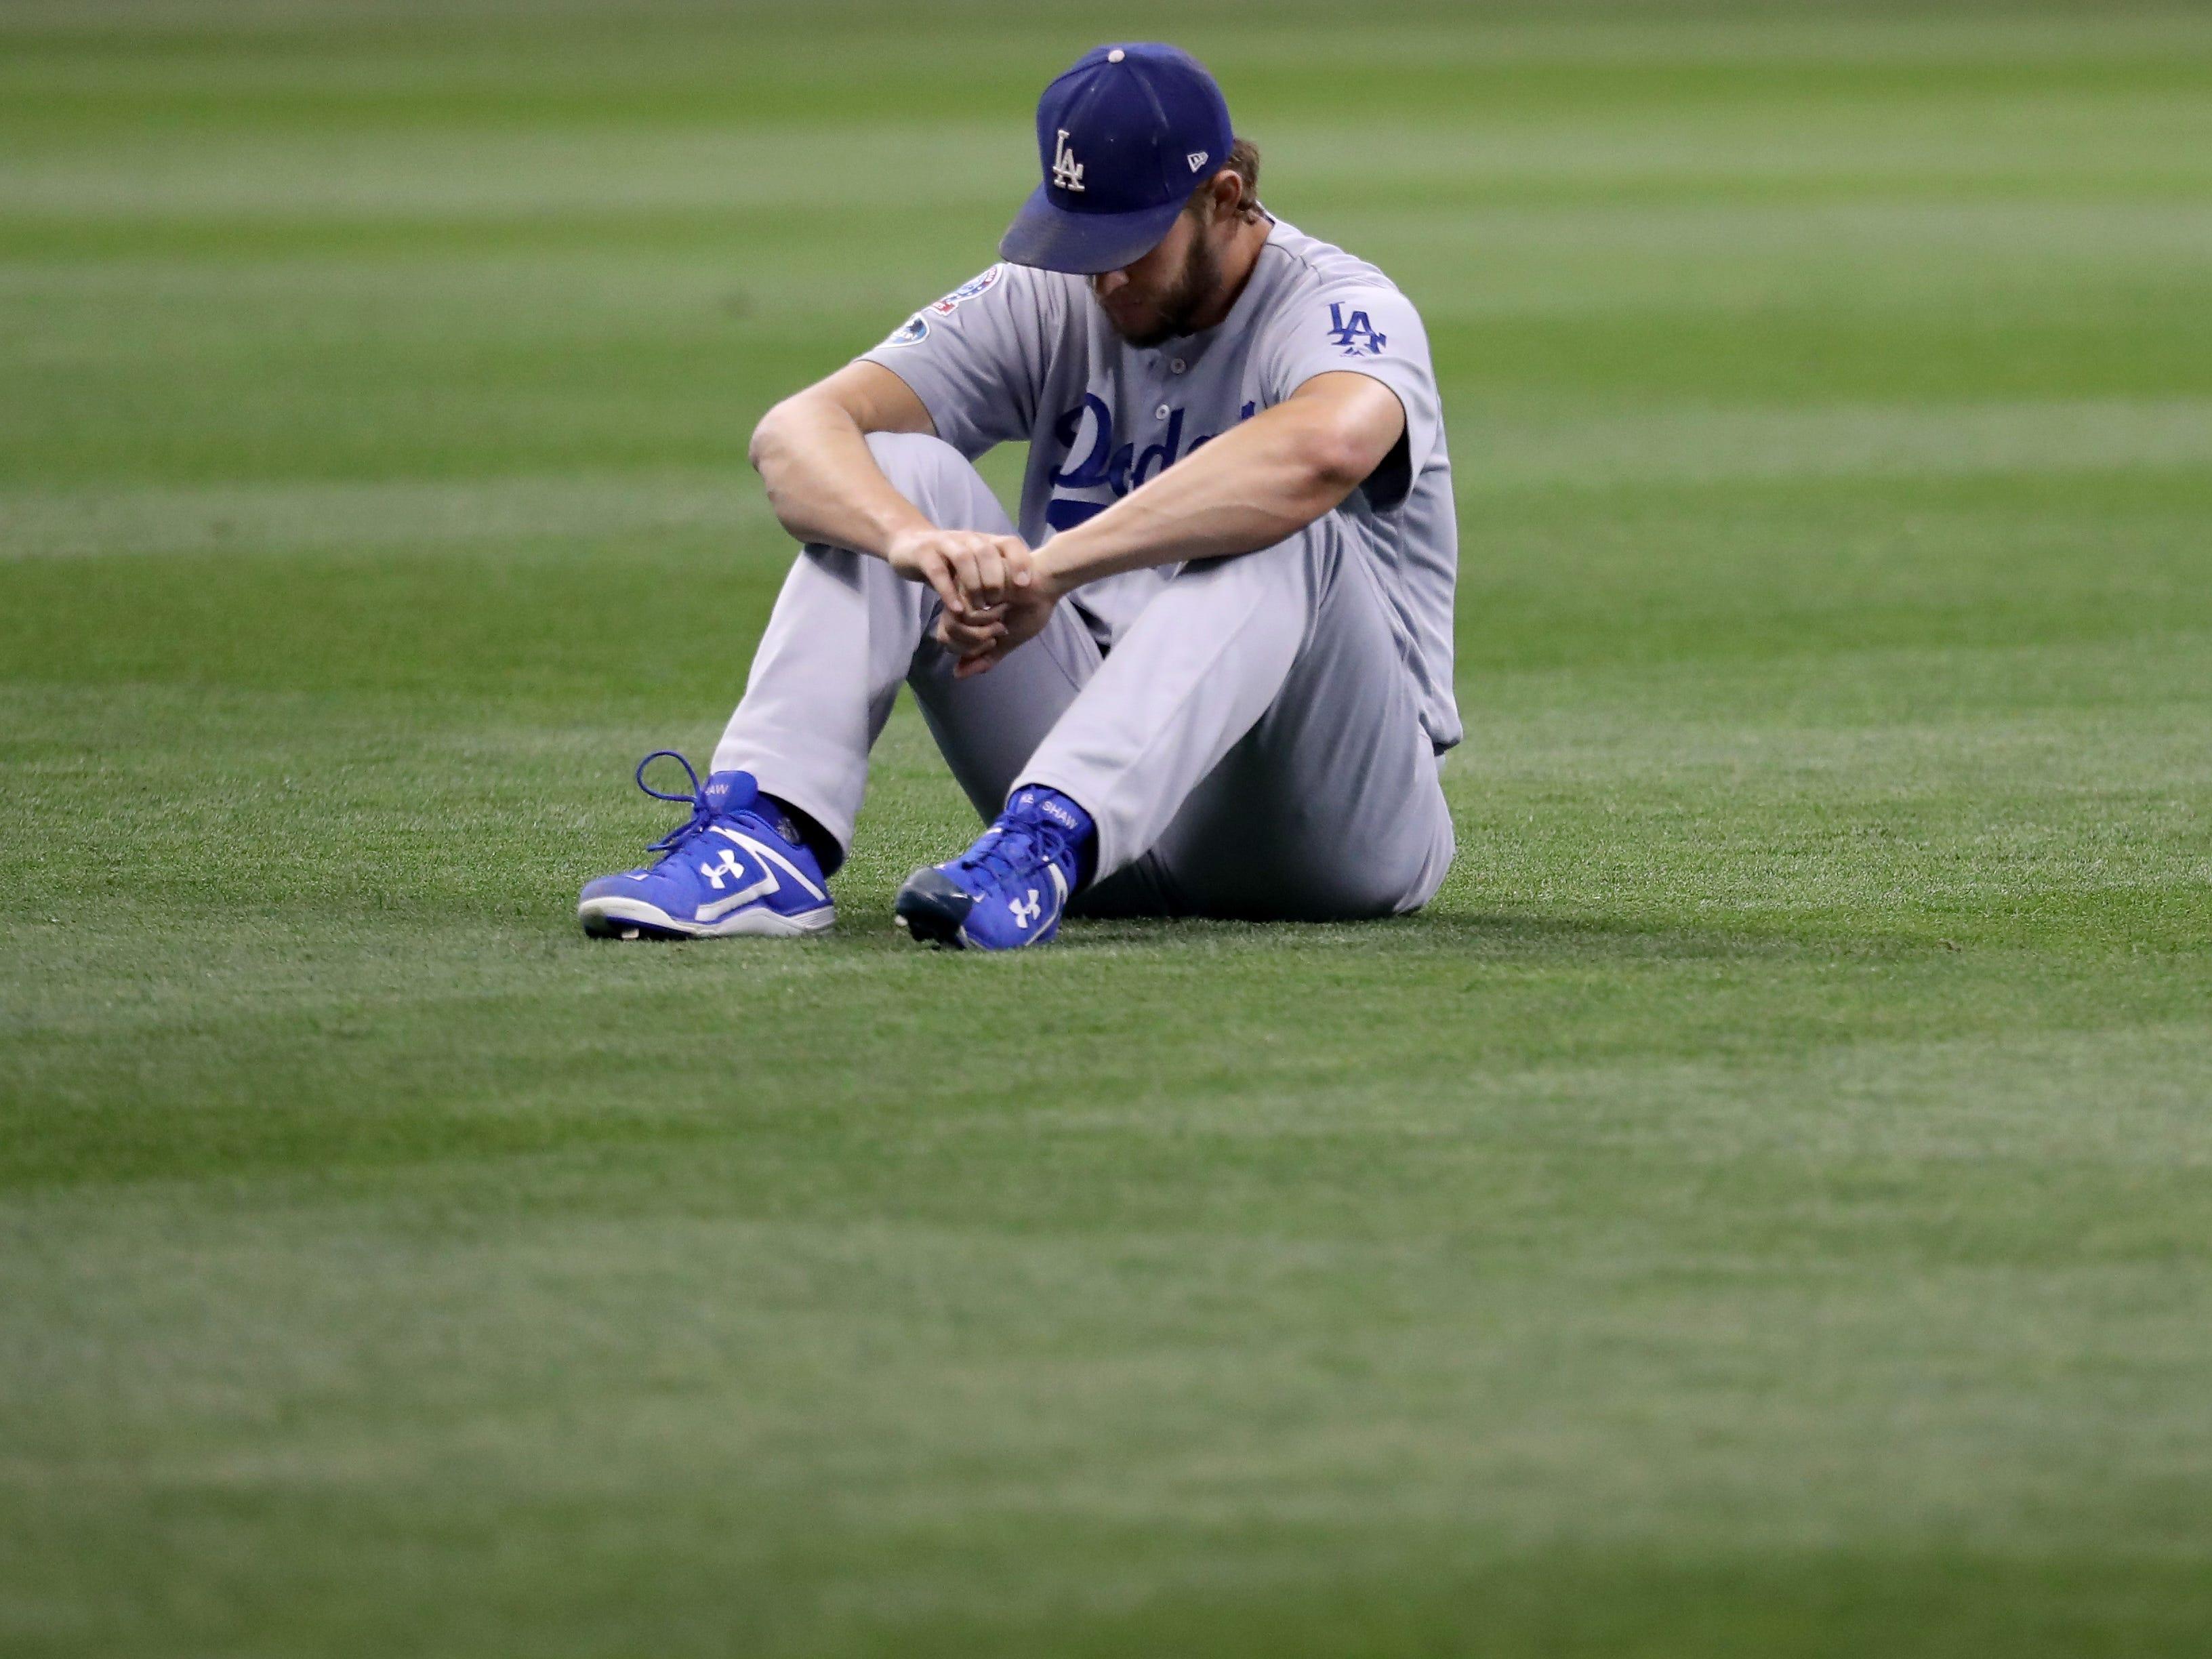 NLCS Game 1: Dodgers' starting pitcher Clayton Kershaw warms up in the outfield.